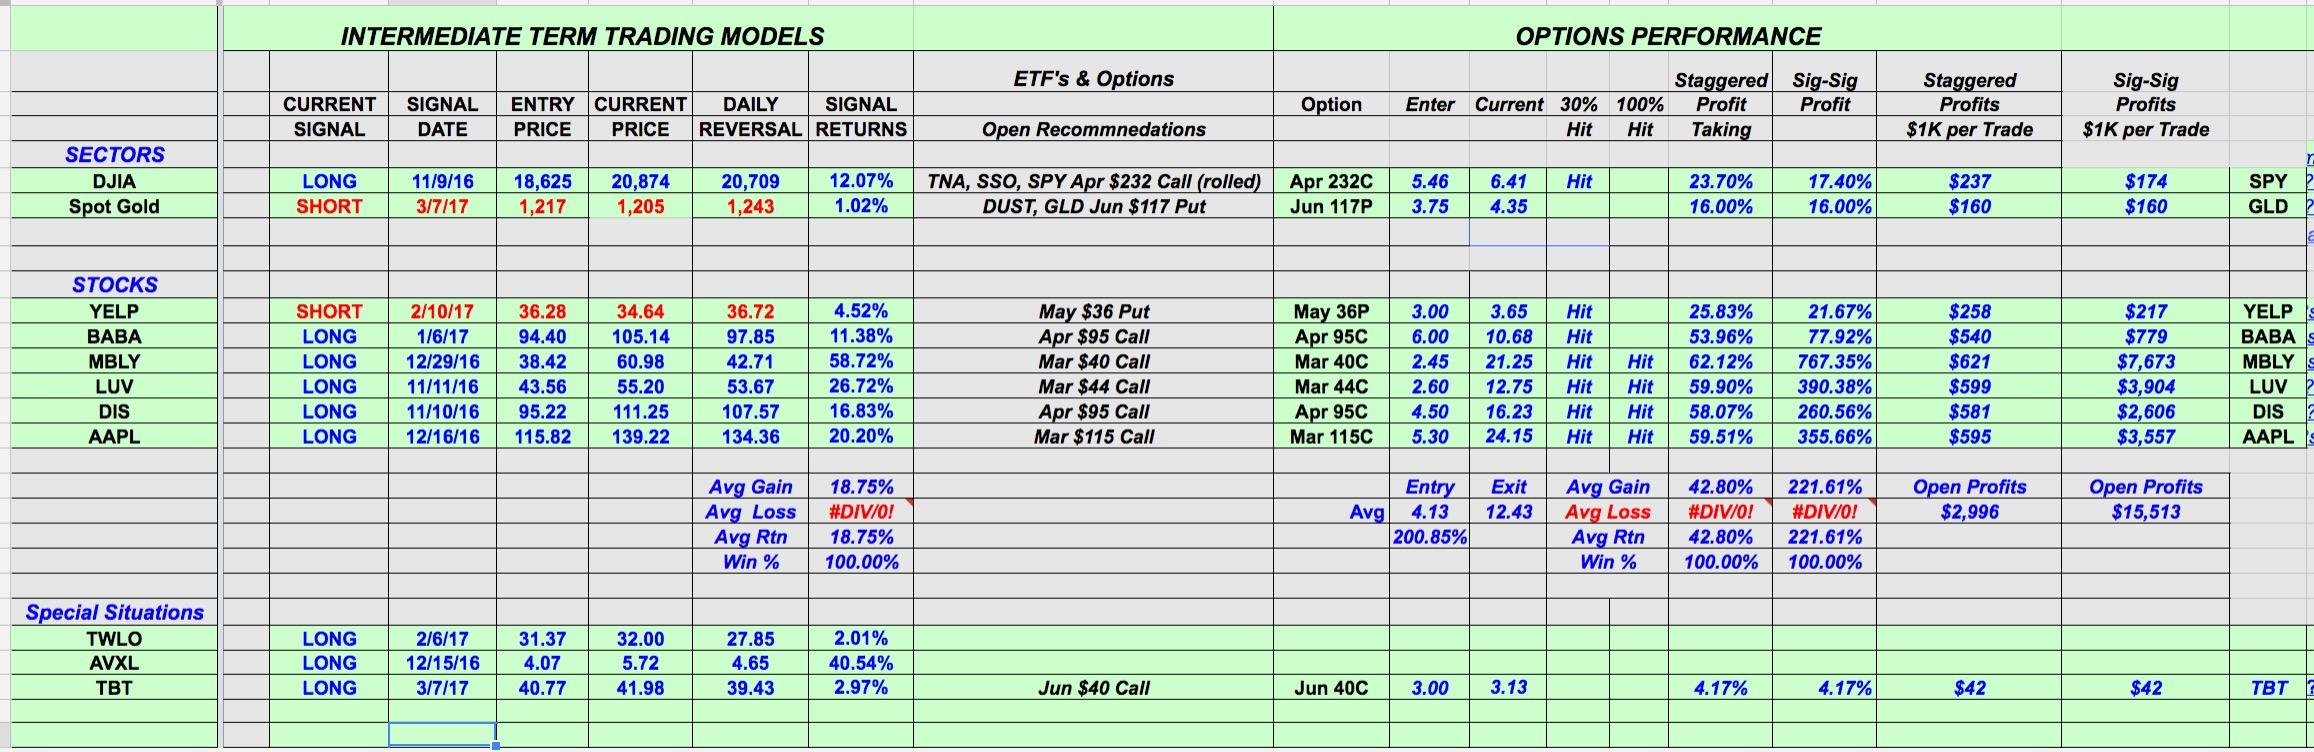 Mbly stock options